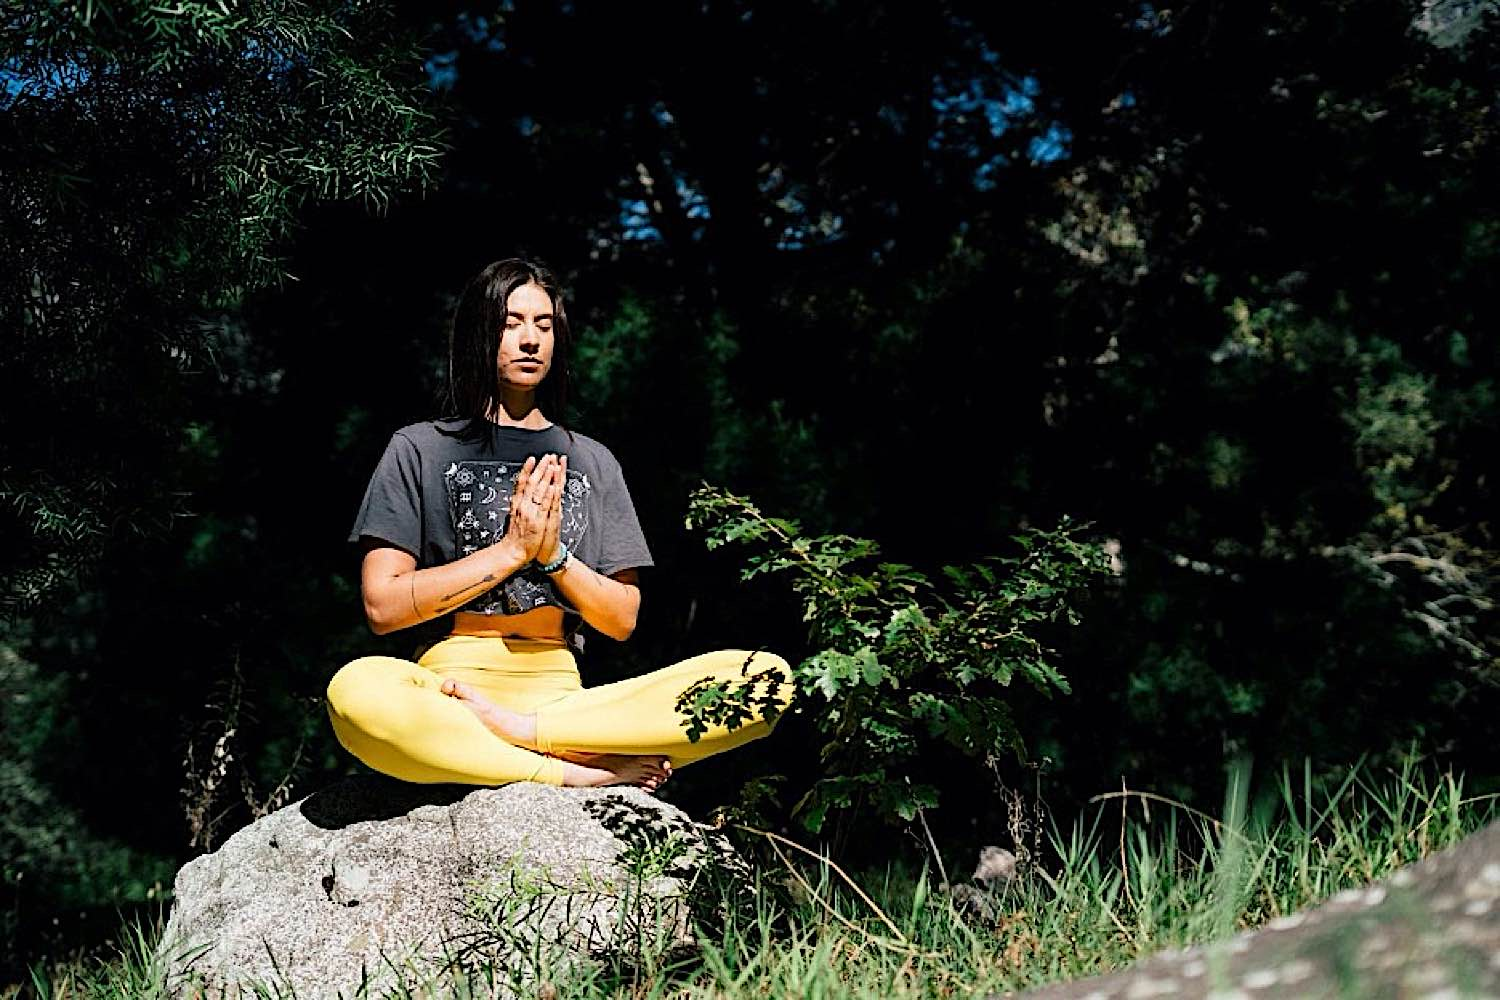 A student meditating. Research indicates meditation has numerous academic, intelligence and health benefits for students.